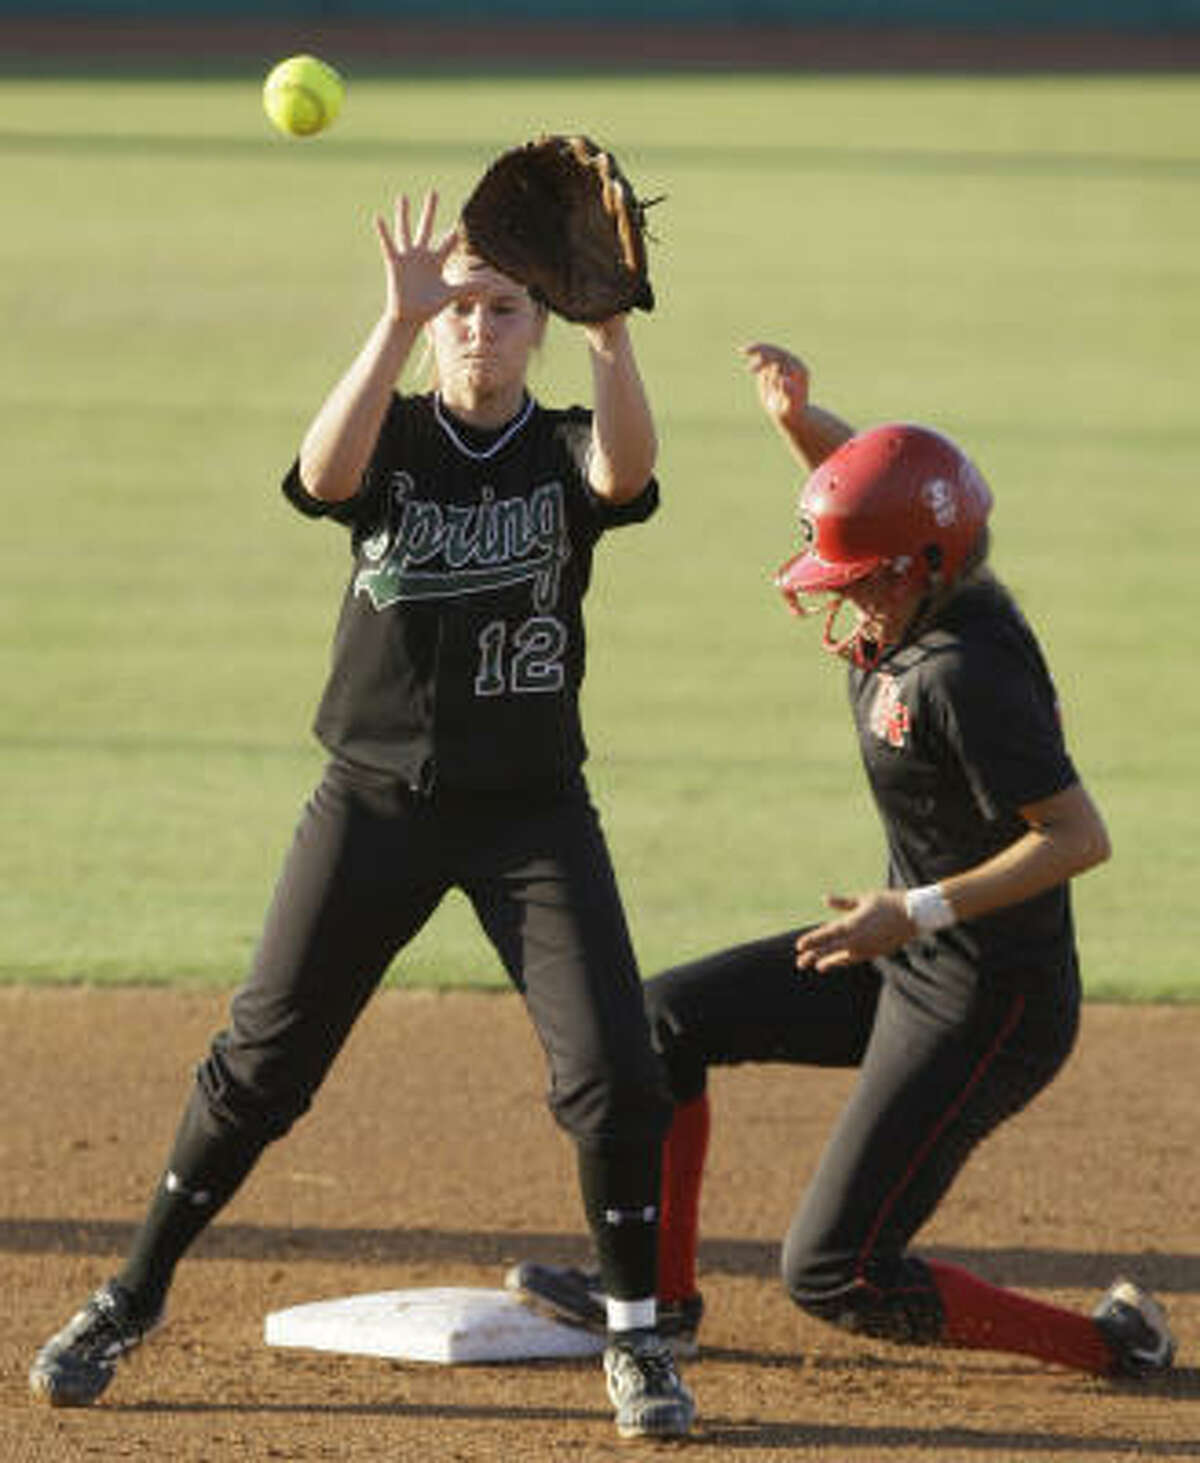 Vista Ridge's Corlee Ramirez slides into second base to beat the tag from Spring's Savannah Smith in the first inning of the 5A Region II softball final Thursday in College Station.